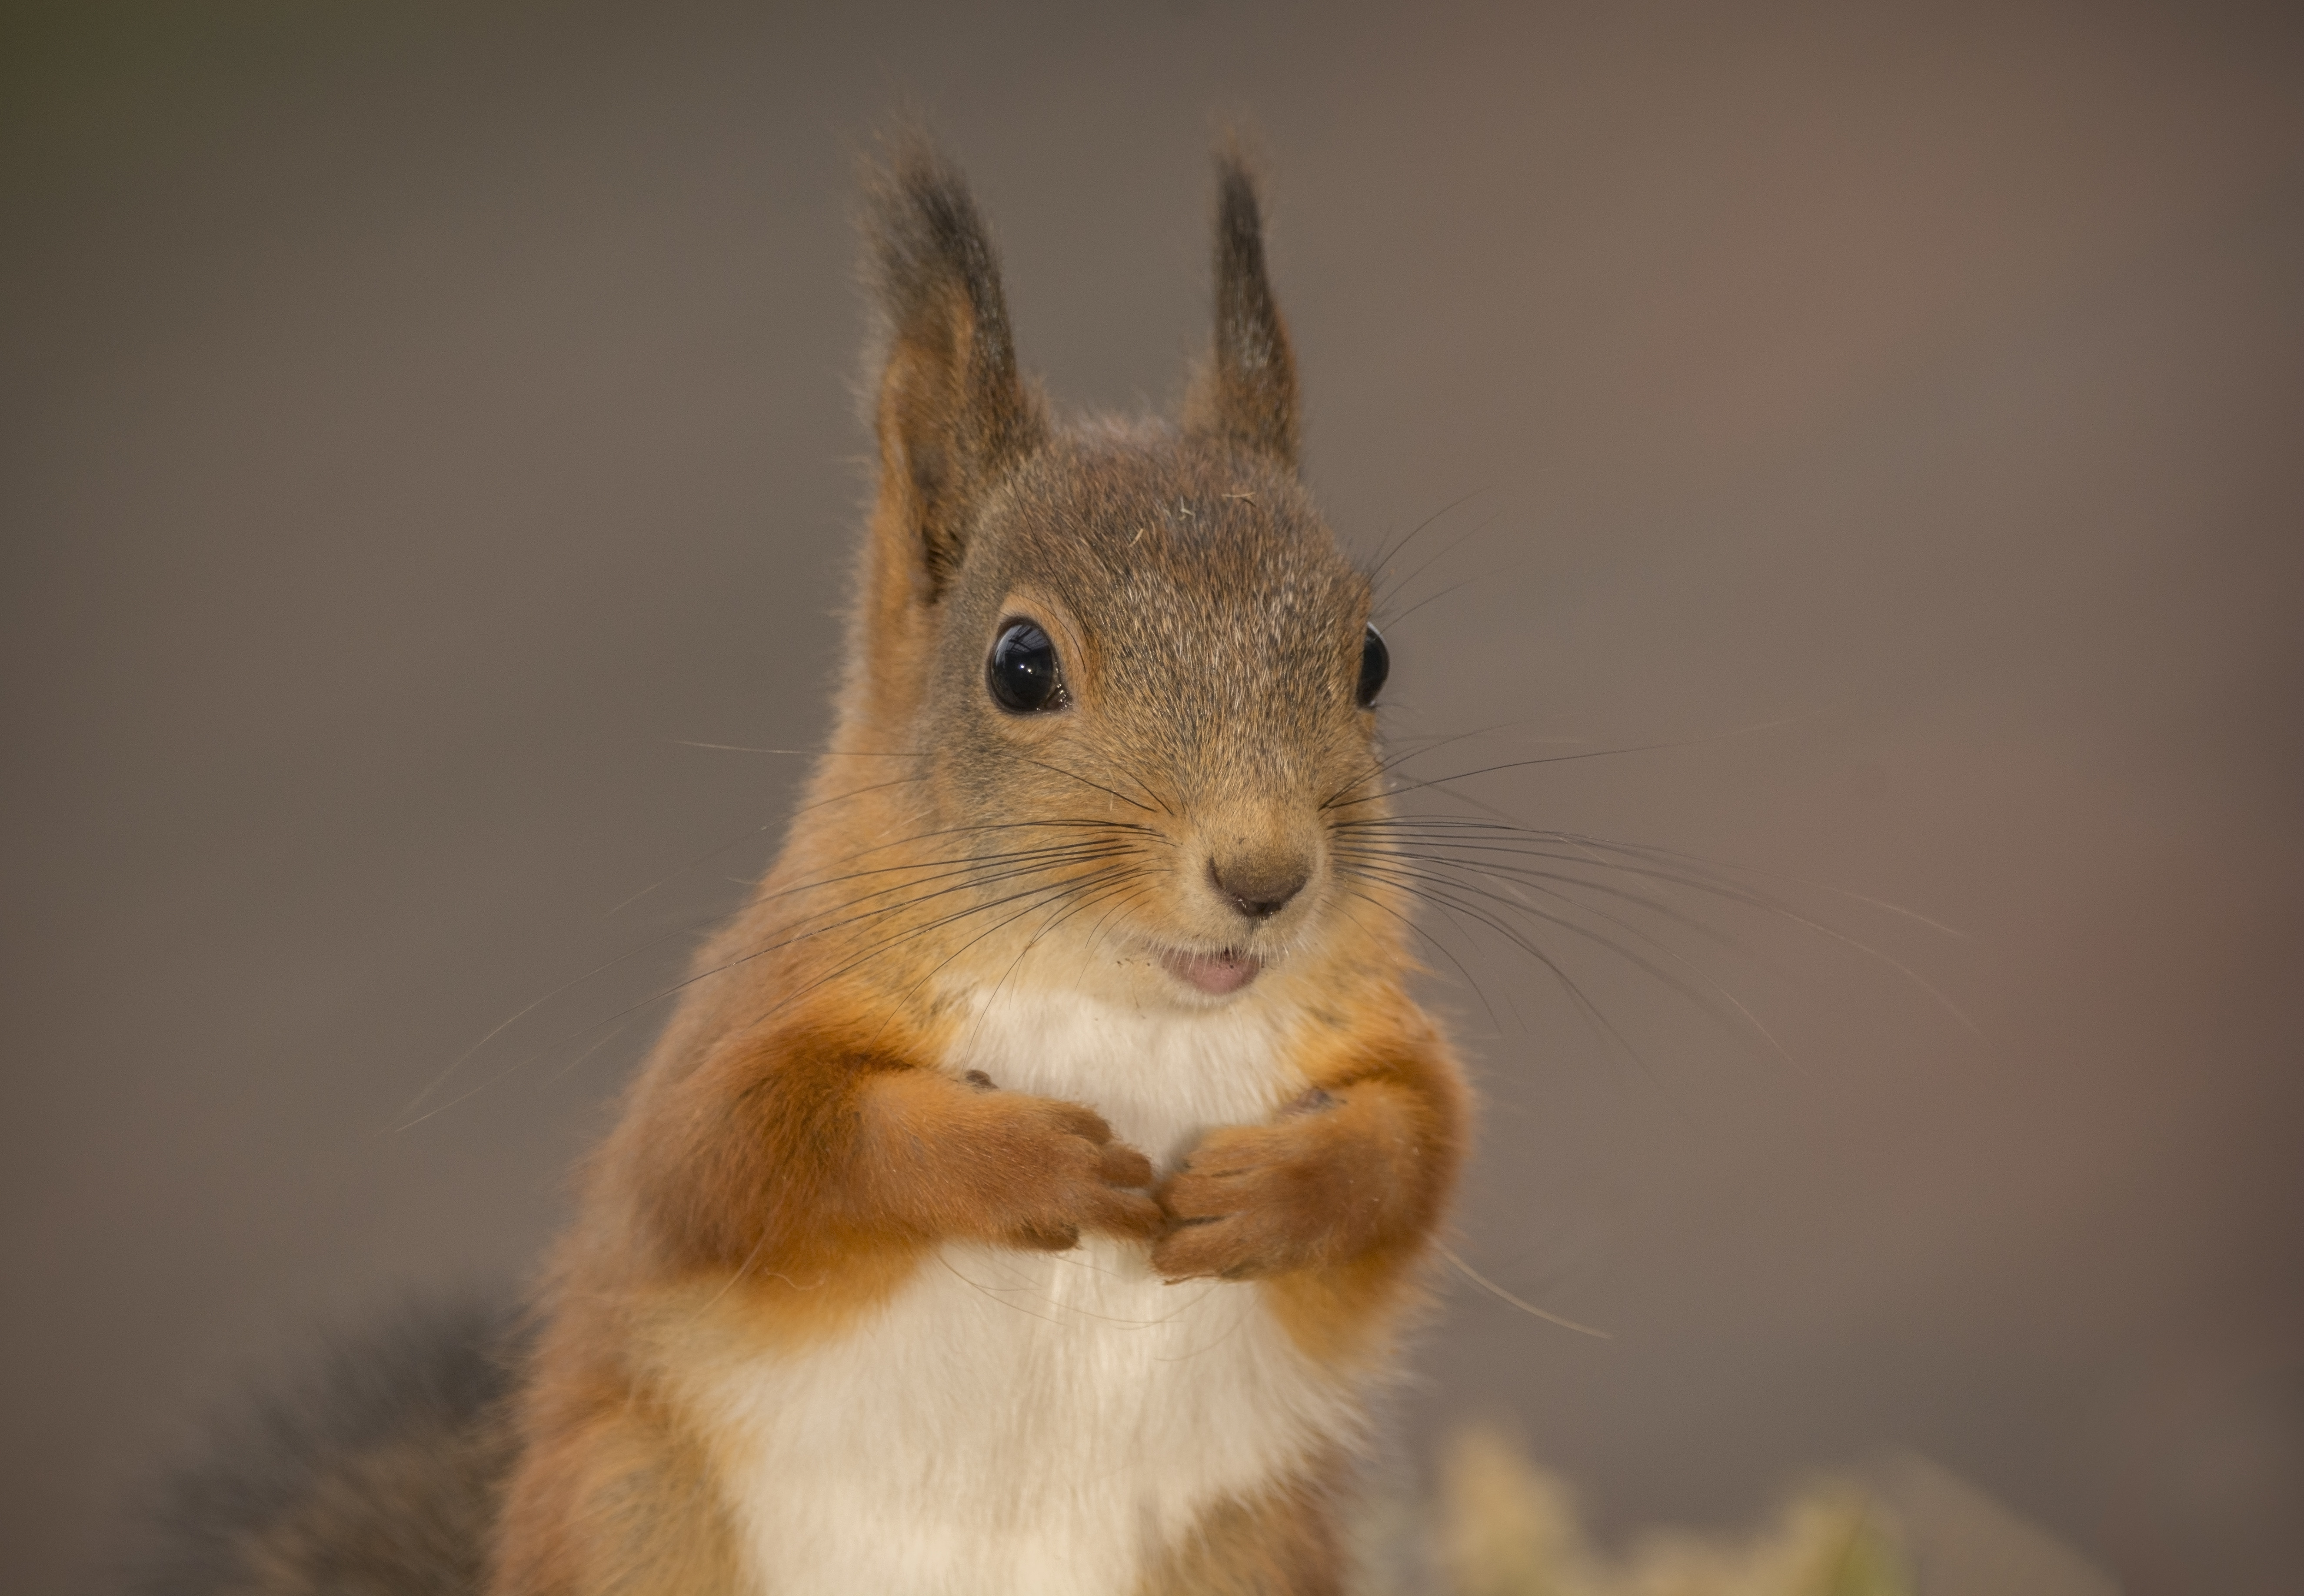 What Pepper Do You Put on Seed So Squirrels Will Not Eat It? | Home